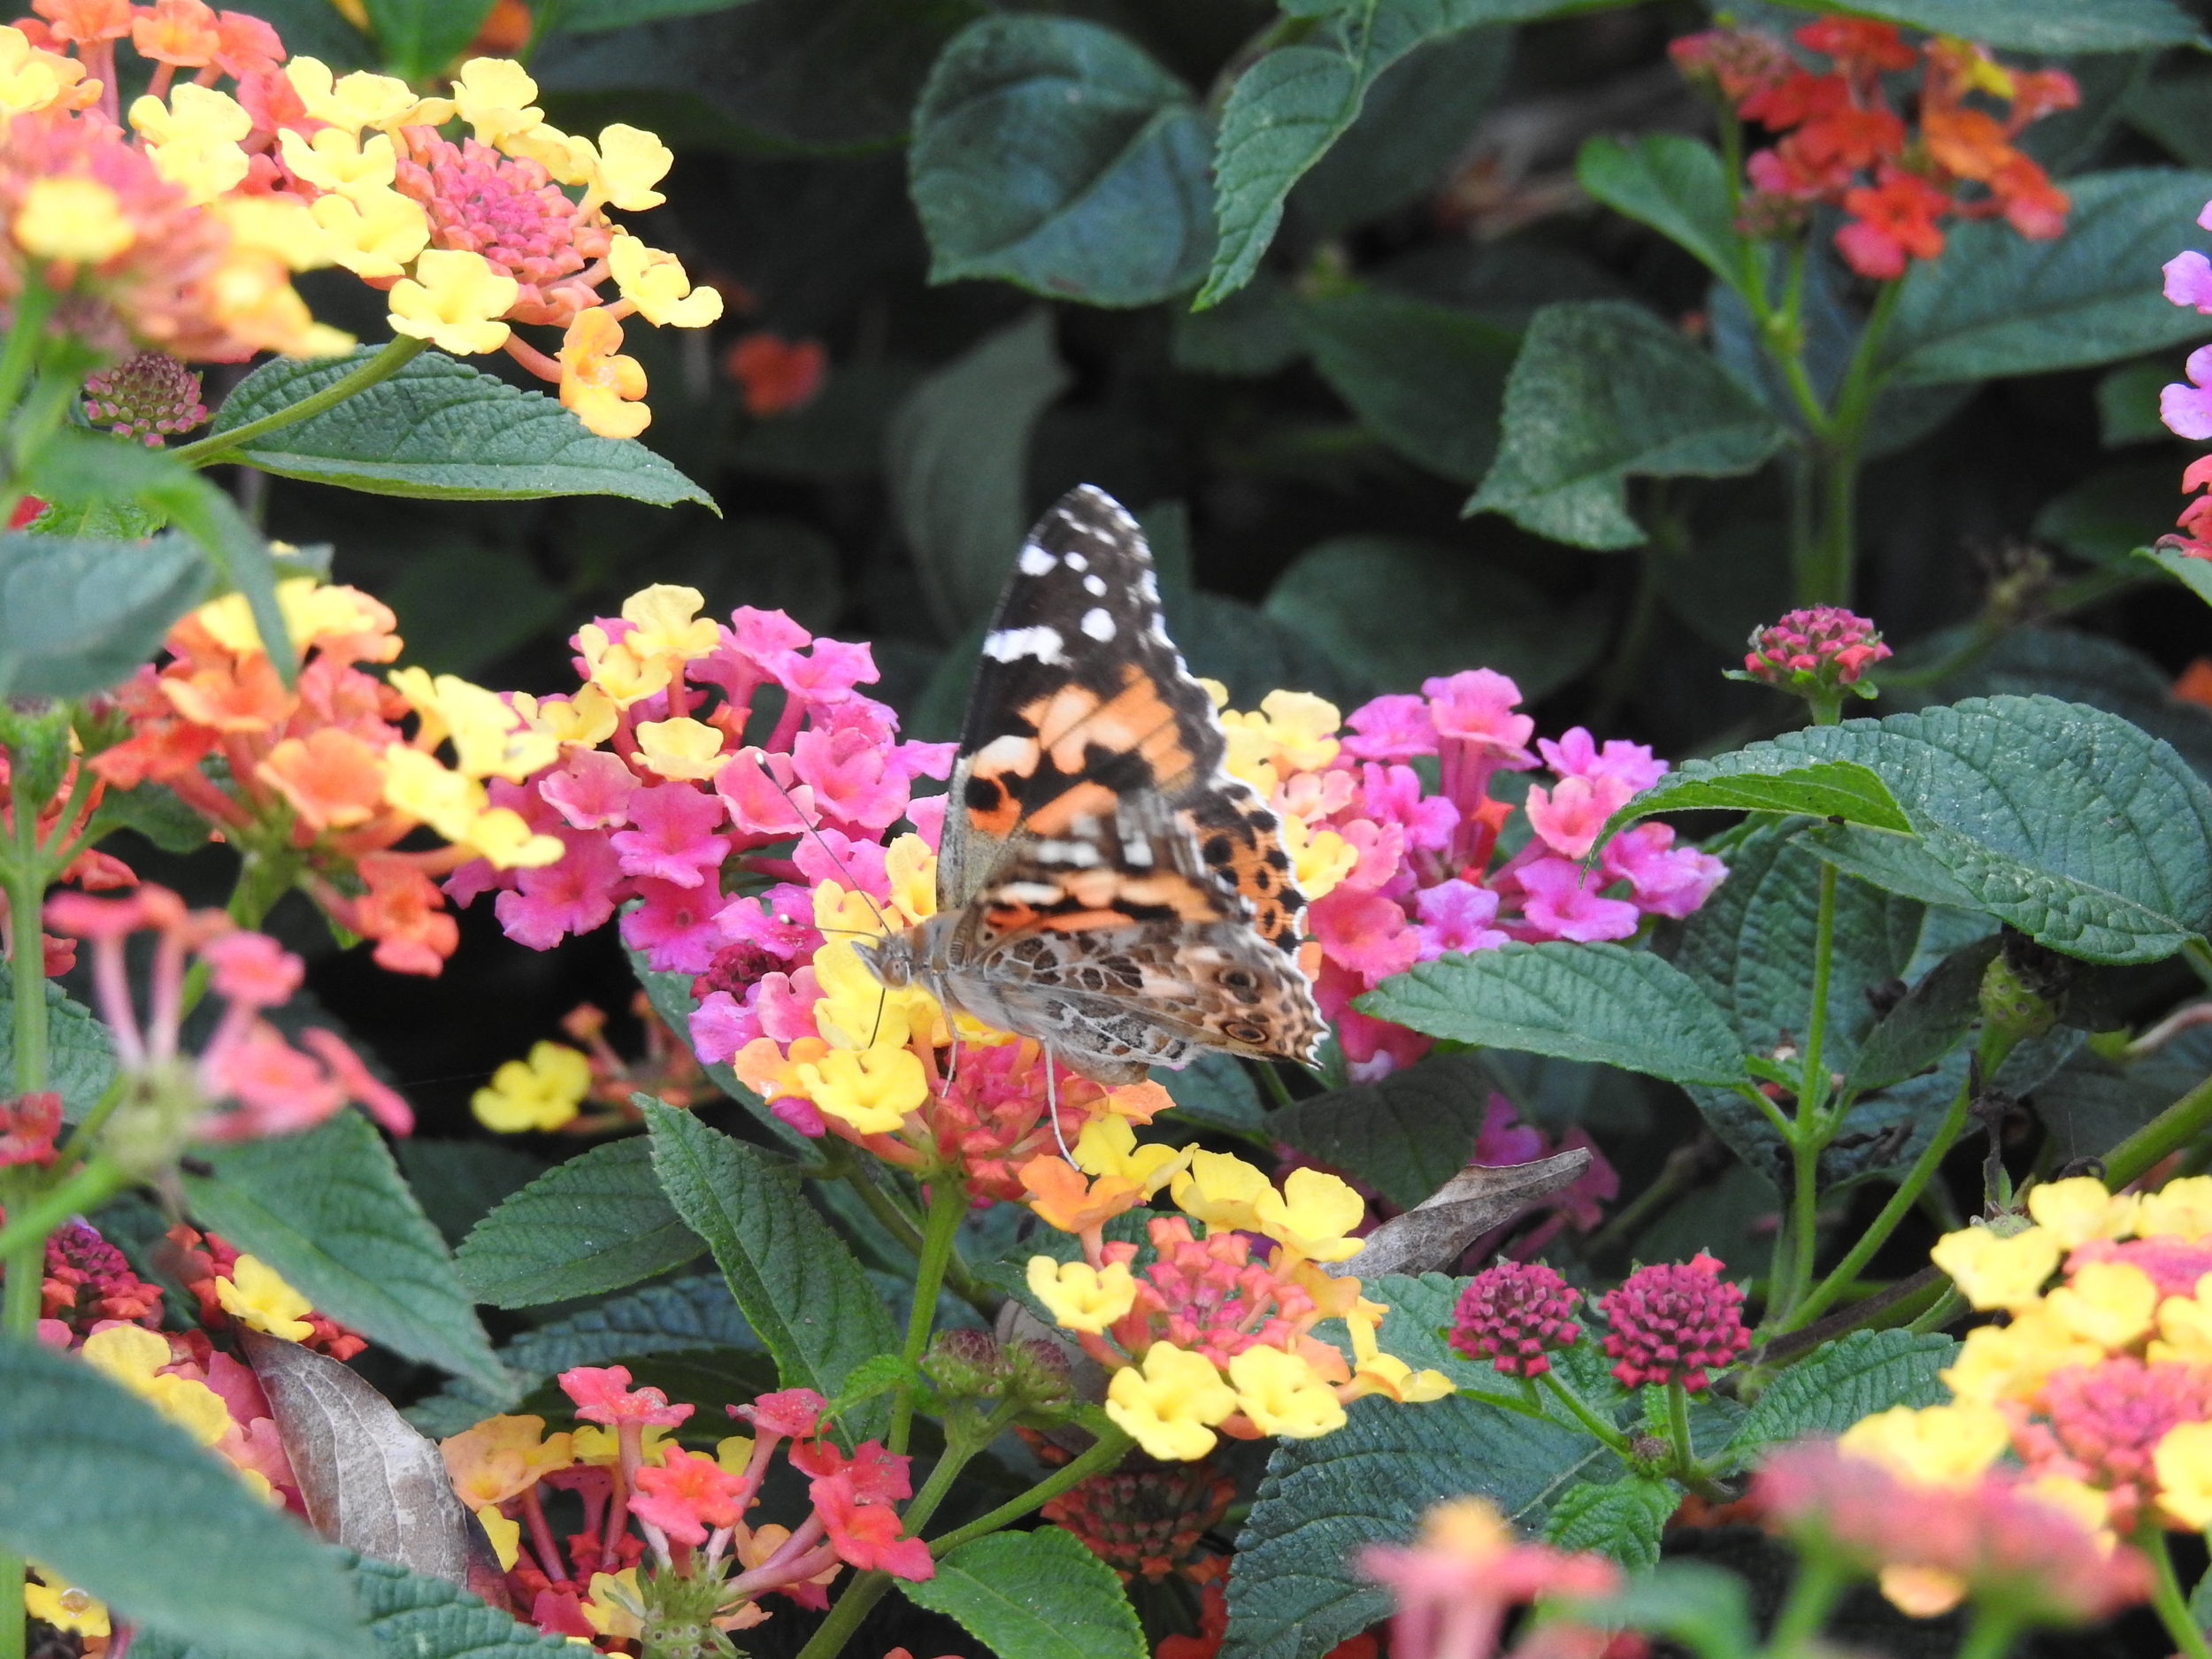 Lantana and butterfly at Brookside Gardens, Silver Spring, Maryland